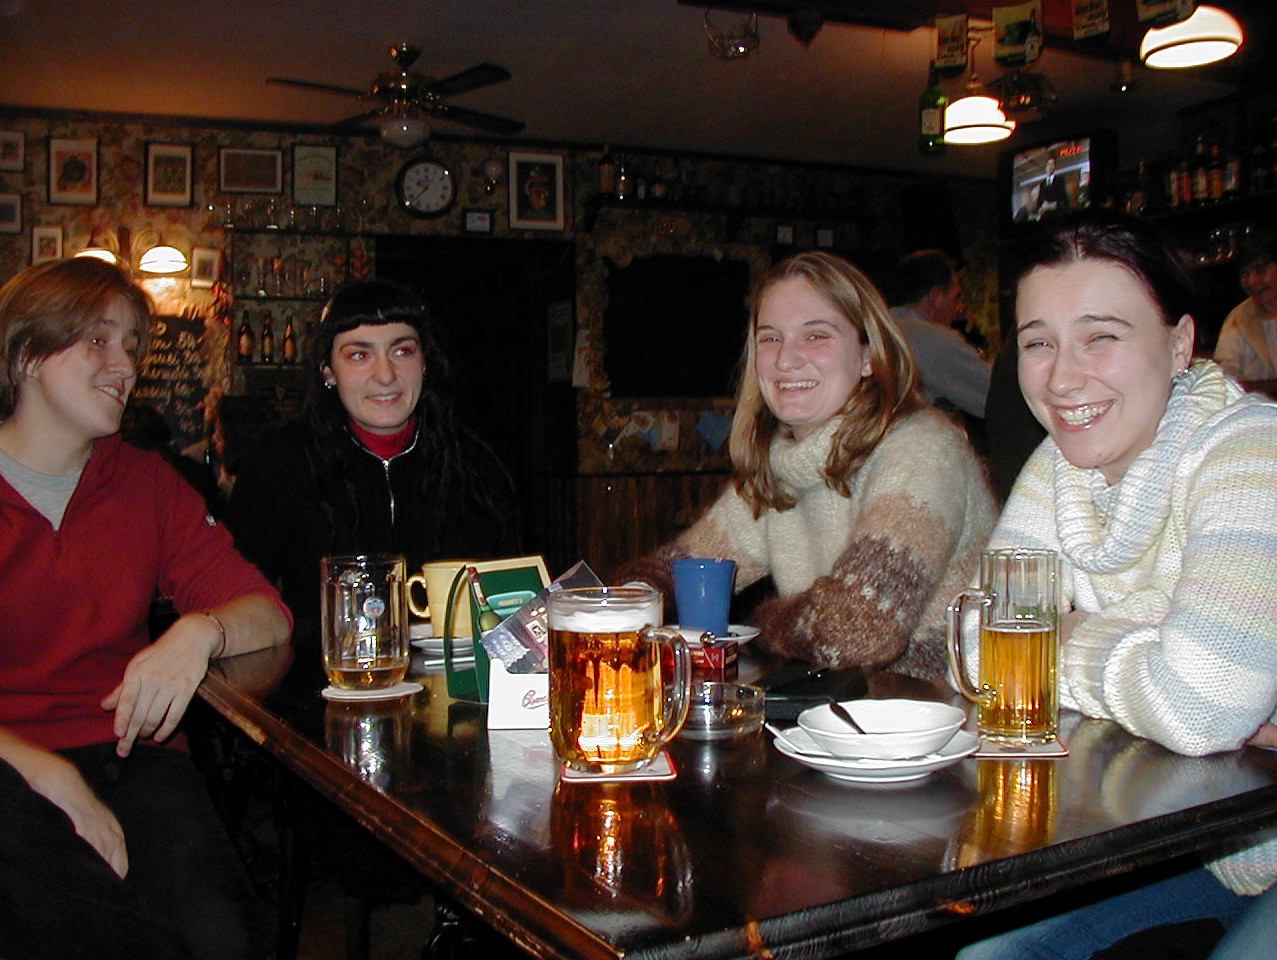 After leaving my volunteer project during the month of December, Ursula made me promise that I would return to Broumov, before I left Europe all together.  Here we are at the now world famous Corner Bar in Broumov the evening before I make my way back to Praha to catch my flight back to California.